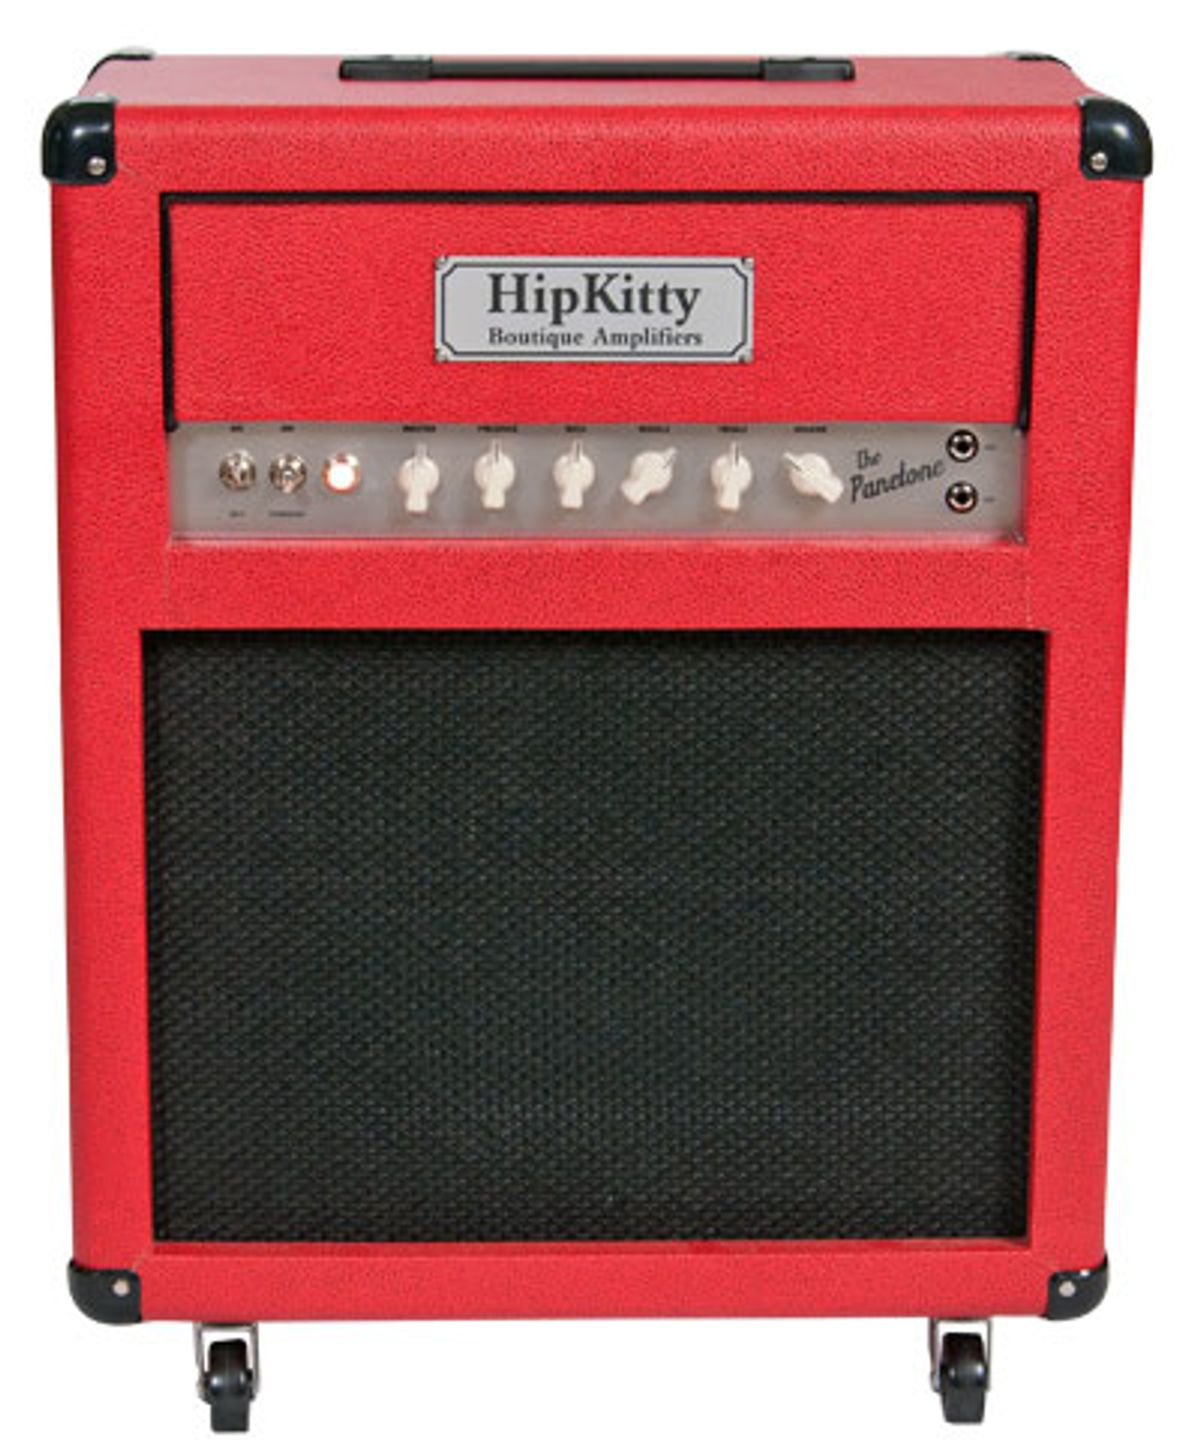 Hip Kitty Panetone Combo Amp Review